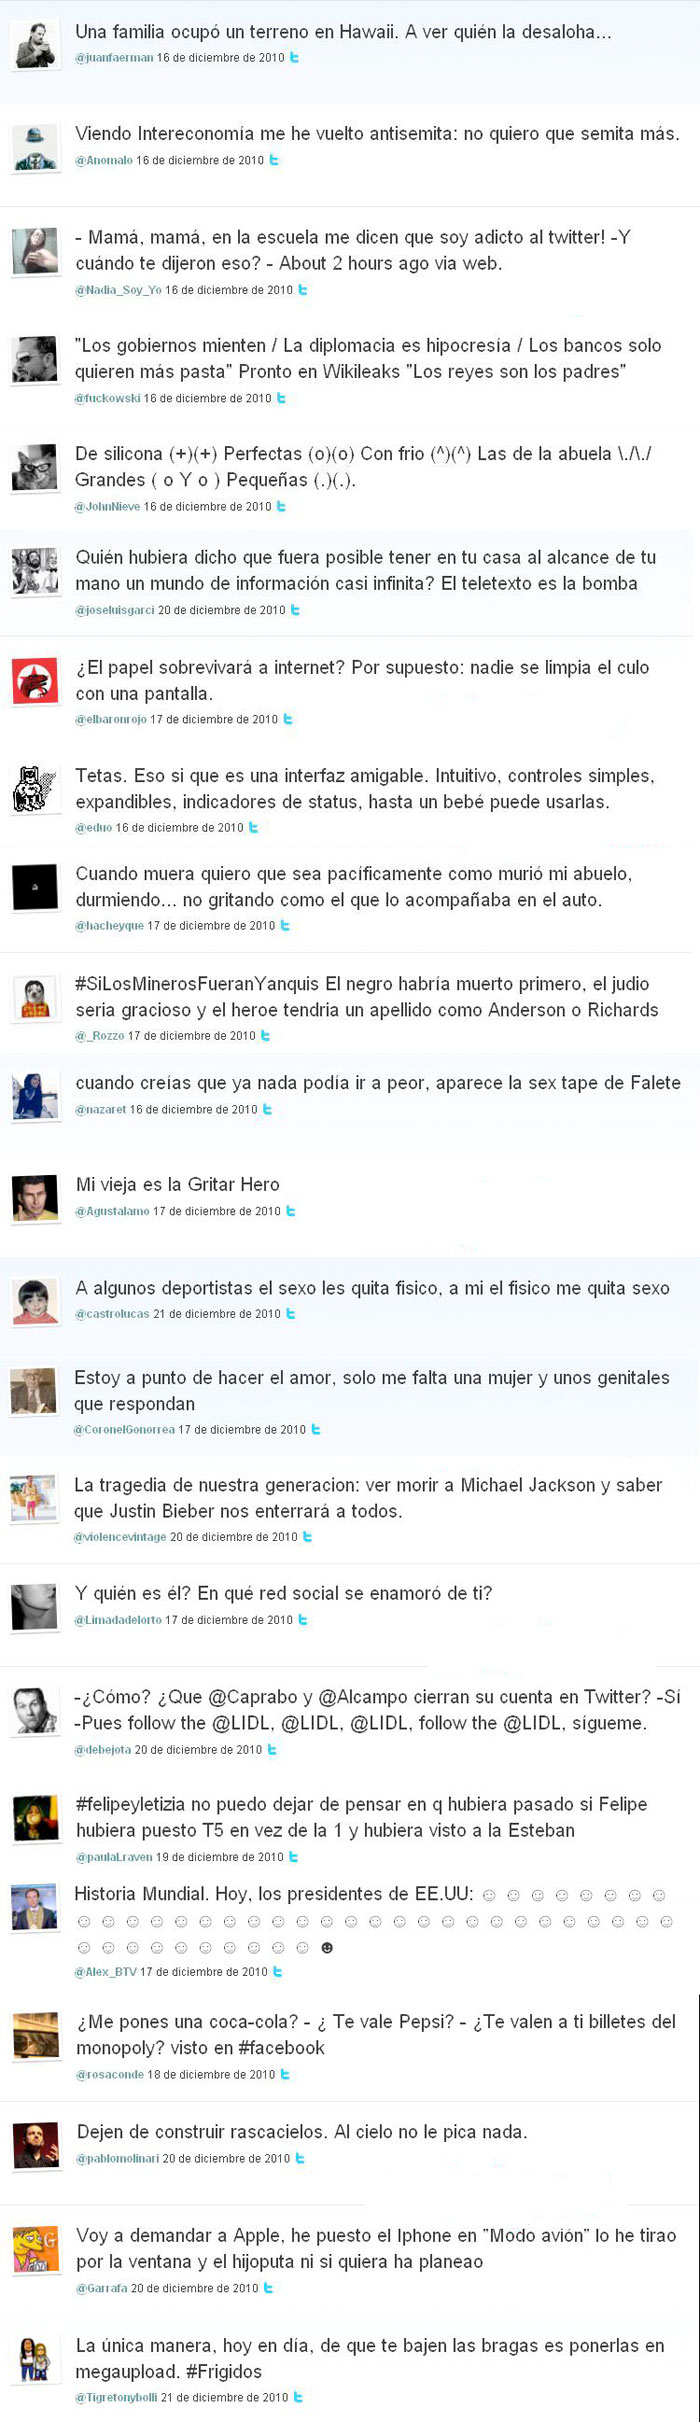 fuente: http://www.technobithia.com/2010/12/28/competencia-mejores-tweets-del-2010/,mejores,tweets,twitter